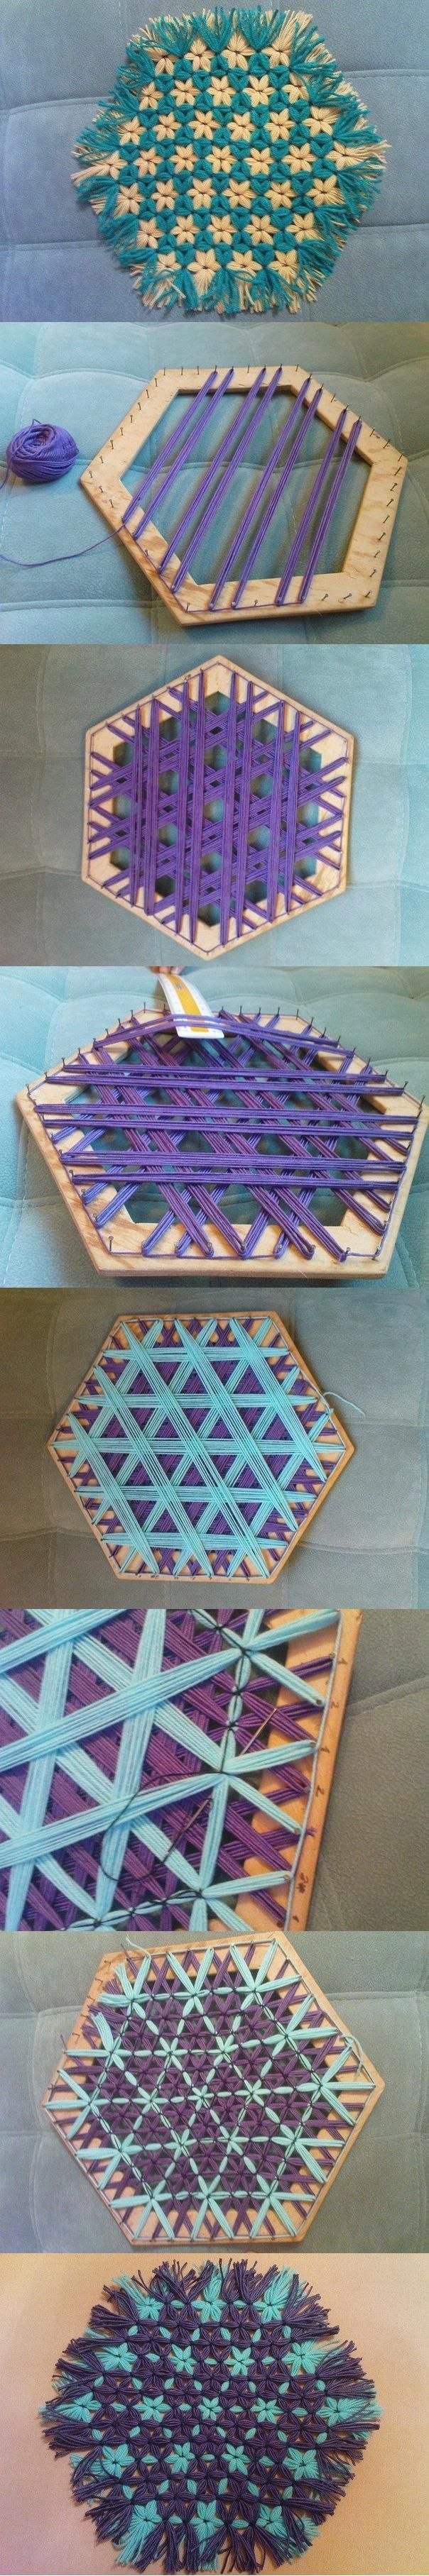 I love this! I plan to make these wooden looms and then make the coasters with my older Girl Scout troop.